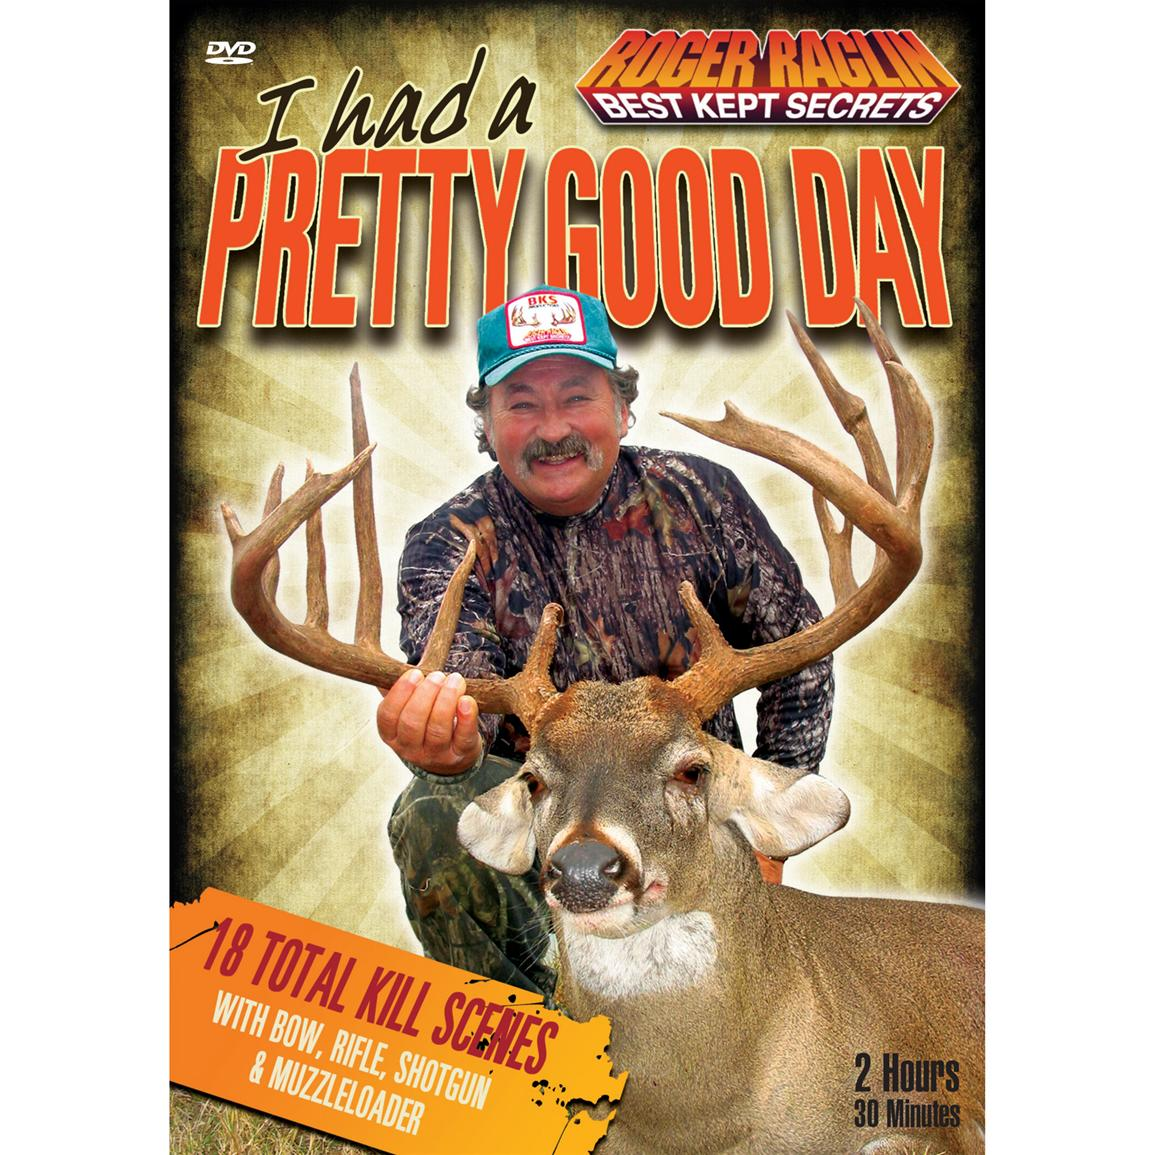 Roger Raglin: I Had a Pretty Good Day DVD from Stoney Wolf Productions®